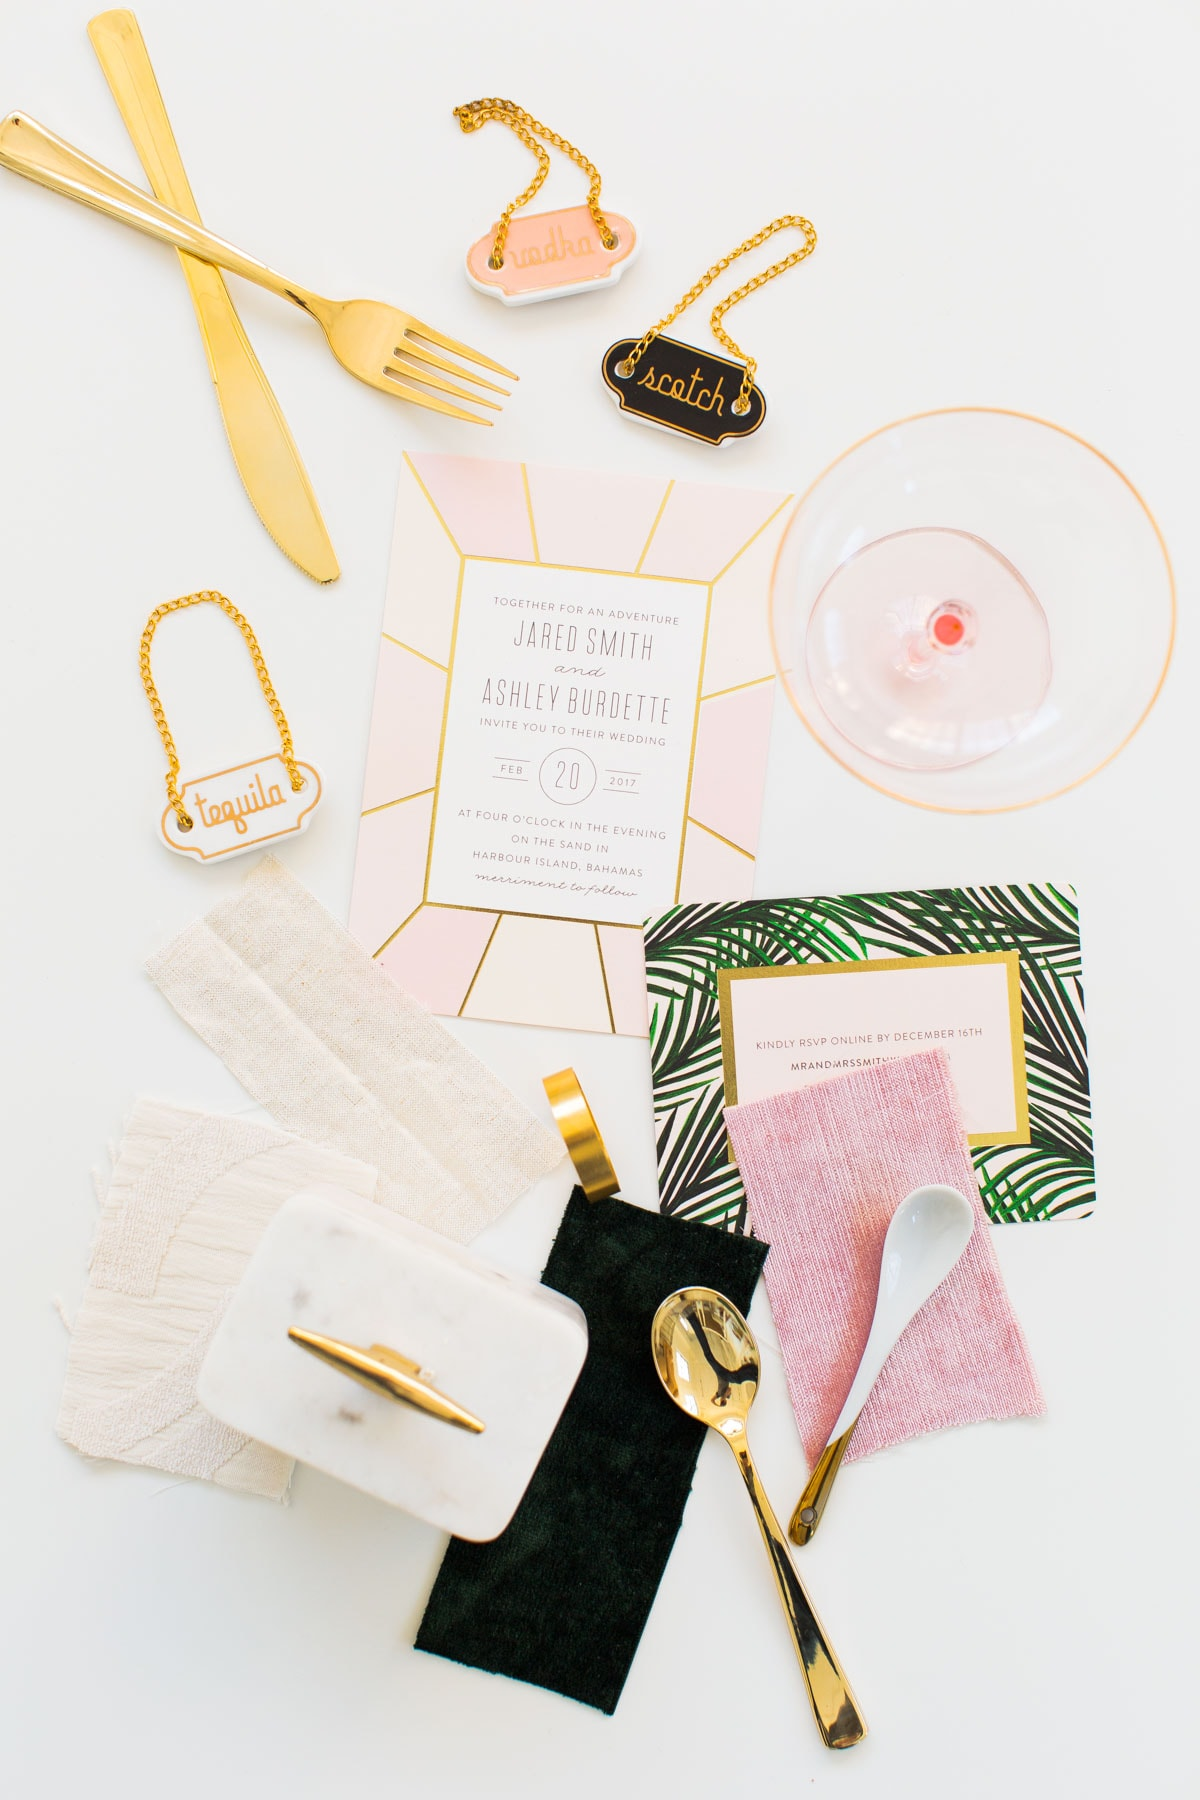 #SMITHSGONEMILD: A Major Plot Twist in Wedding Plans by top Houston lifestyle blogger, Ashley Rose of Sugar & Cloth